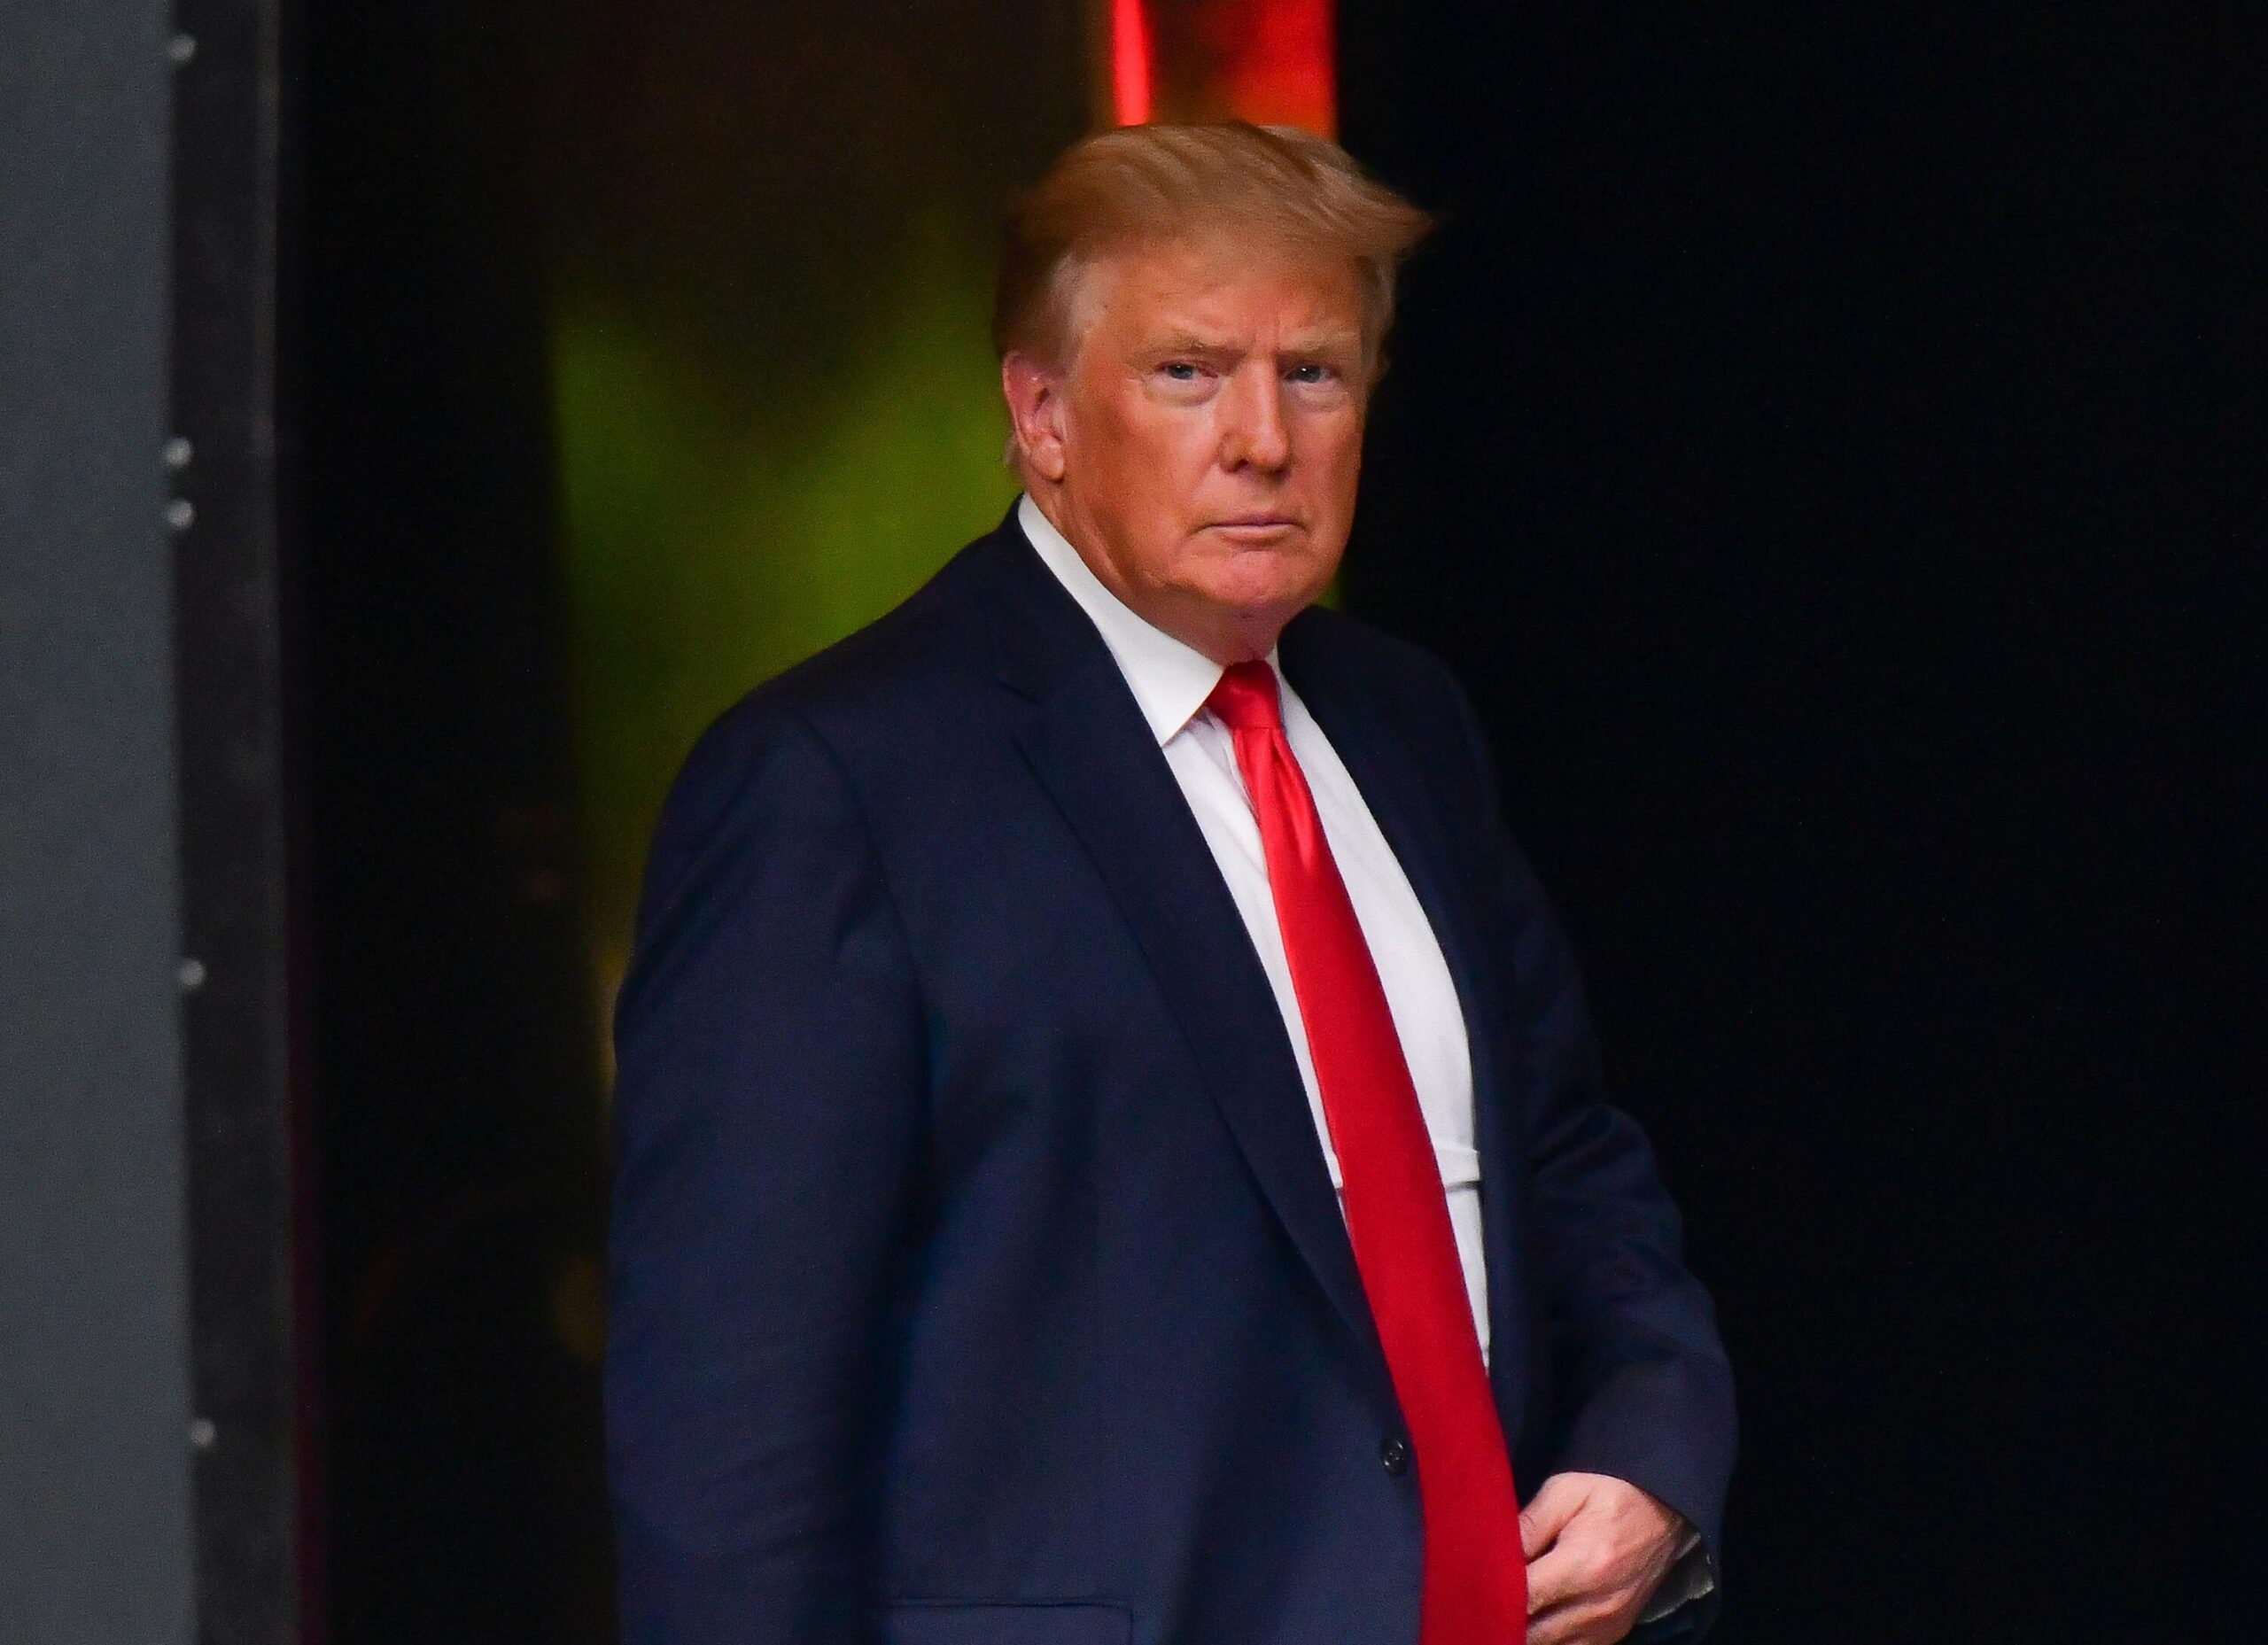 <i>James Devaney/GC Images/Getty Images</i><br/>A New York judge has ordered former President Donald Trump